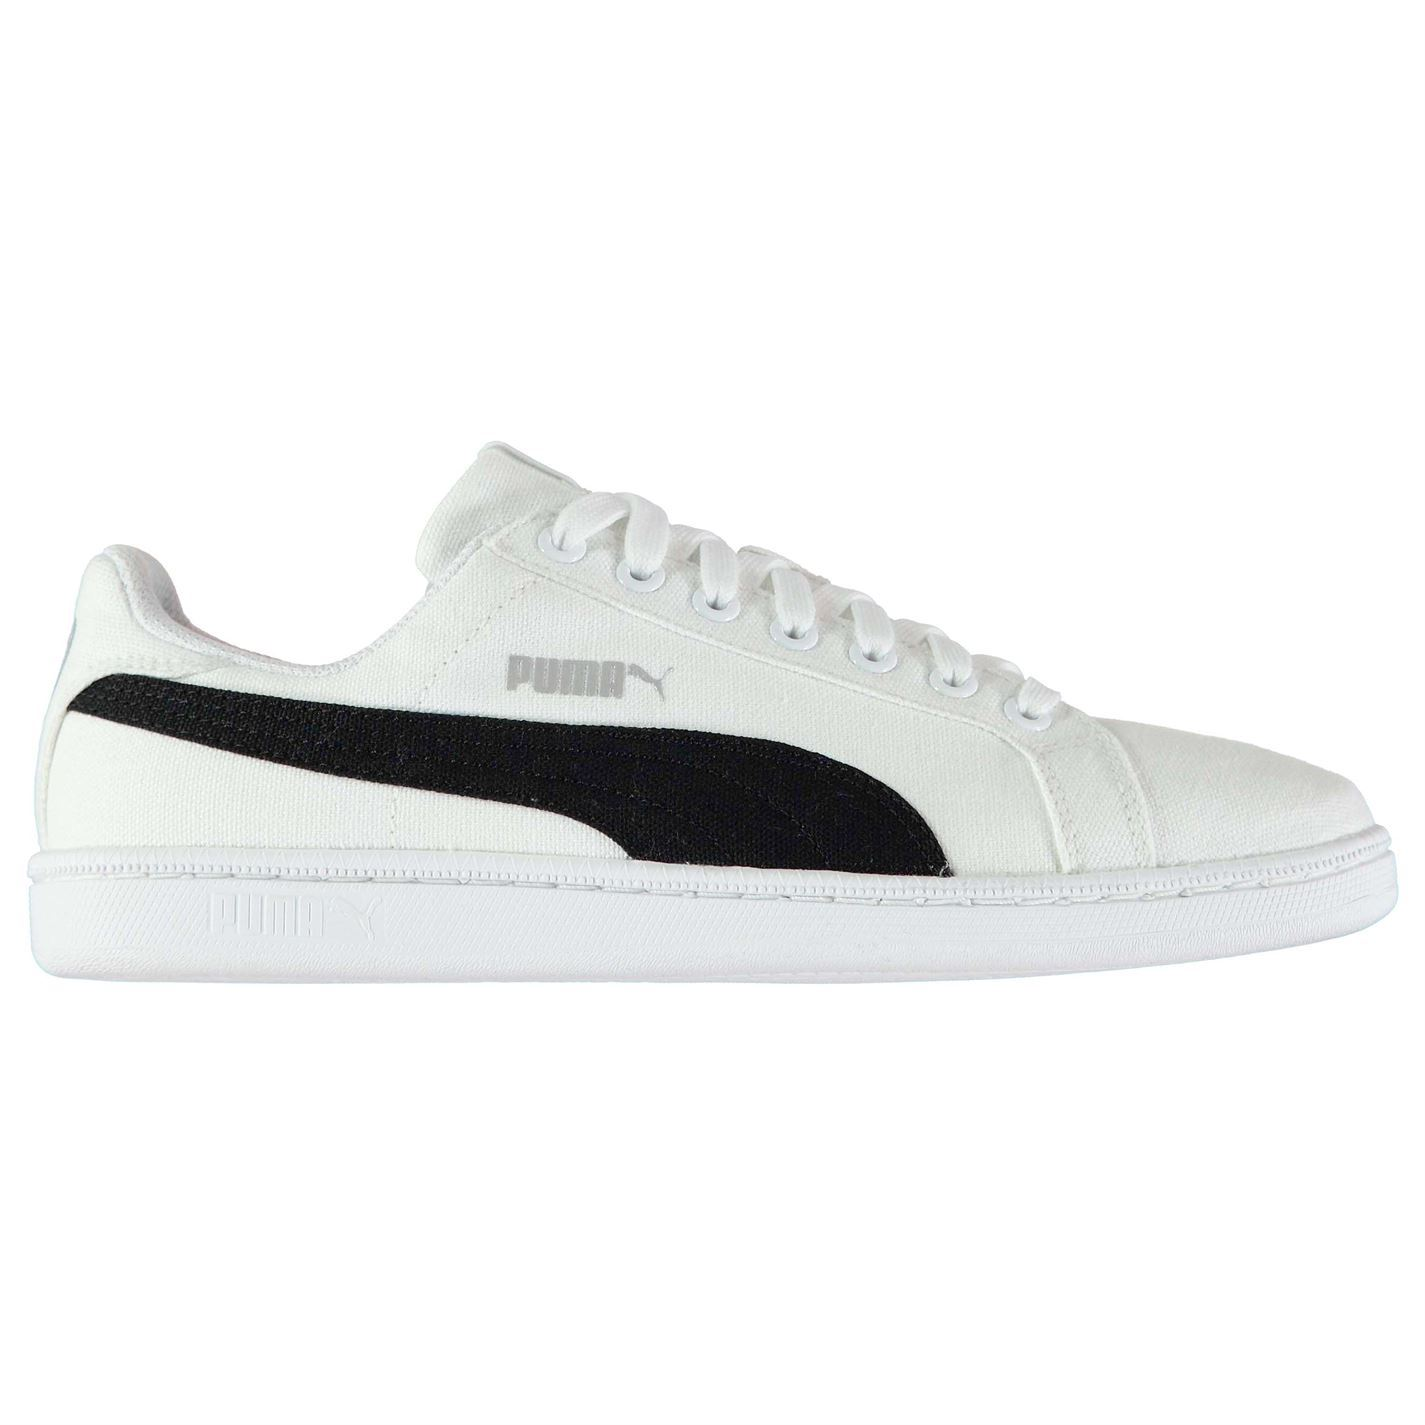 Puma Mens Smash Canvas Trainers Sneakers Lace Up Shoes Padded Ankle ... cf2fca4d2e32